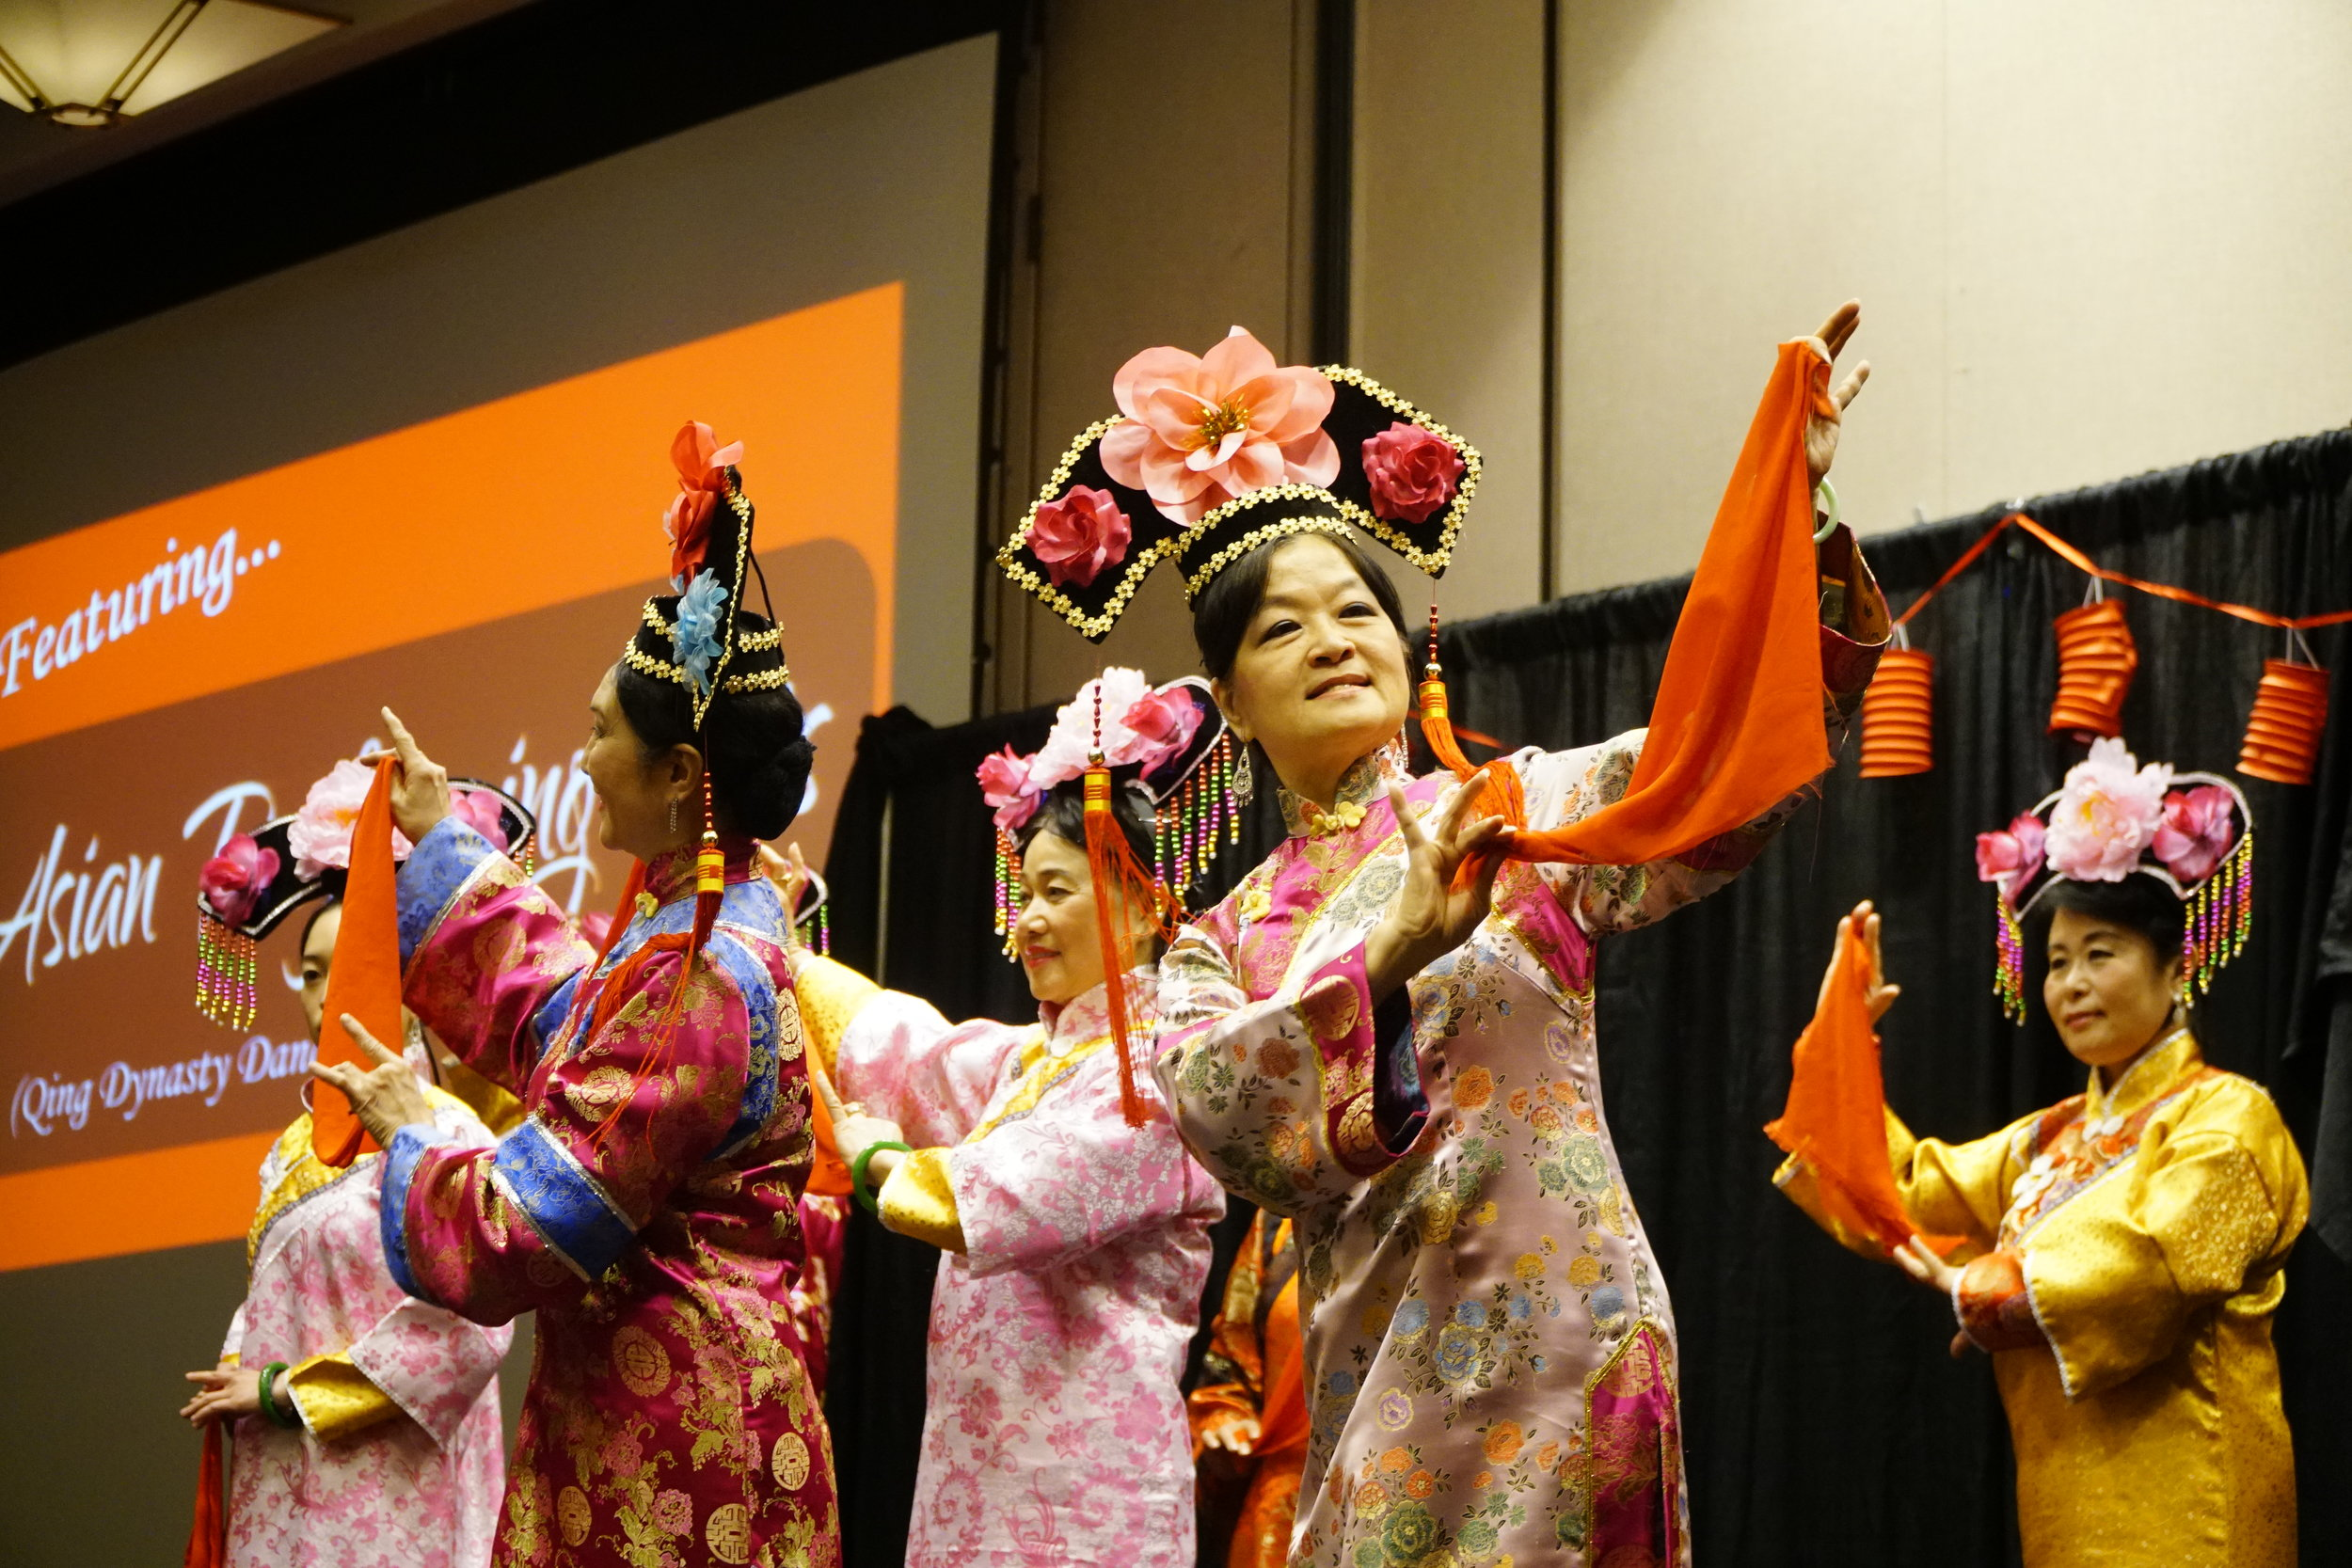 The Chinese Undergraduate Student Association and the Vietnamese Student Association of UConn celebrate the Lunar New Year: Year of the Dog through a variety of traditional and modern cultural performances.(Eric Wang/The Daily Campus)